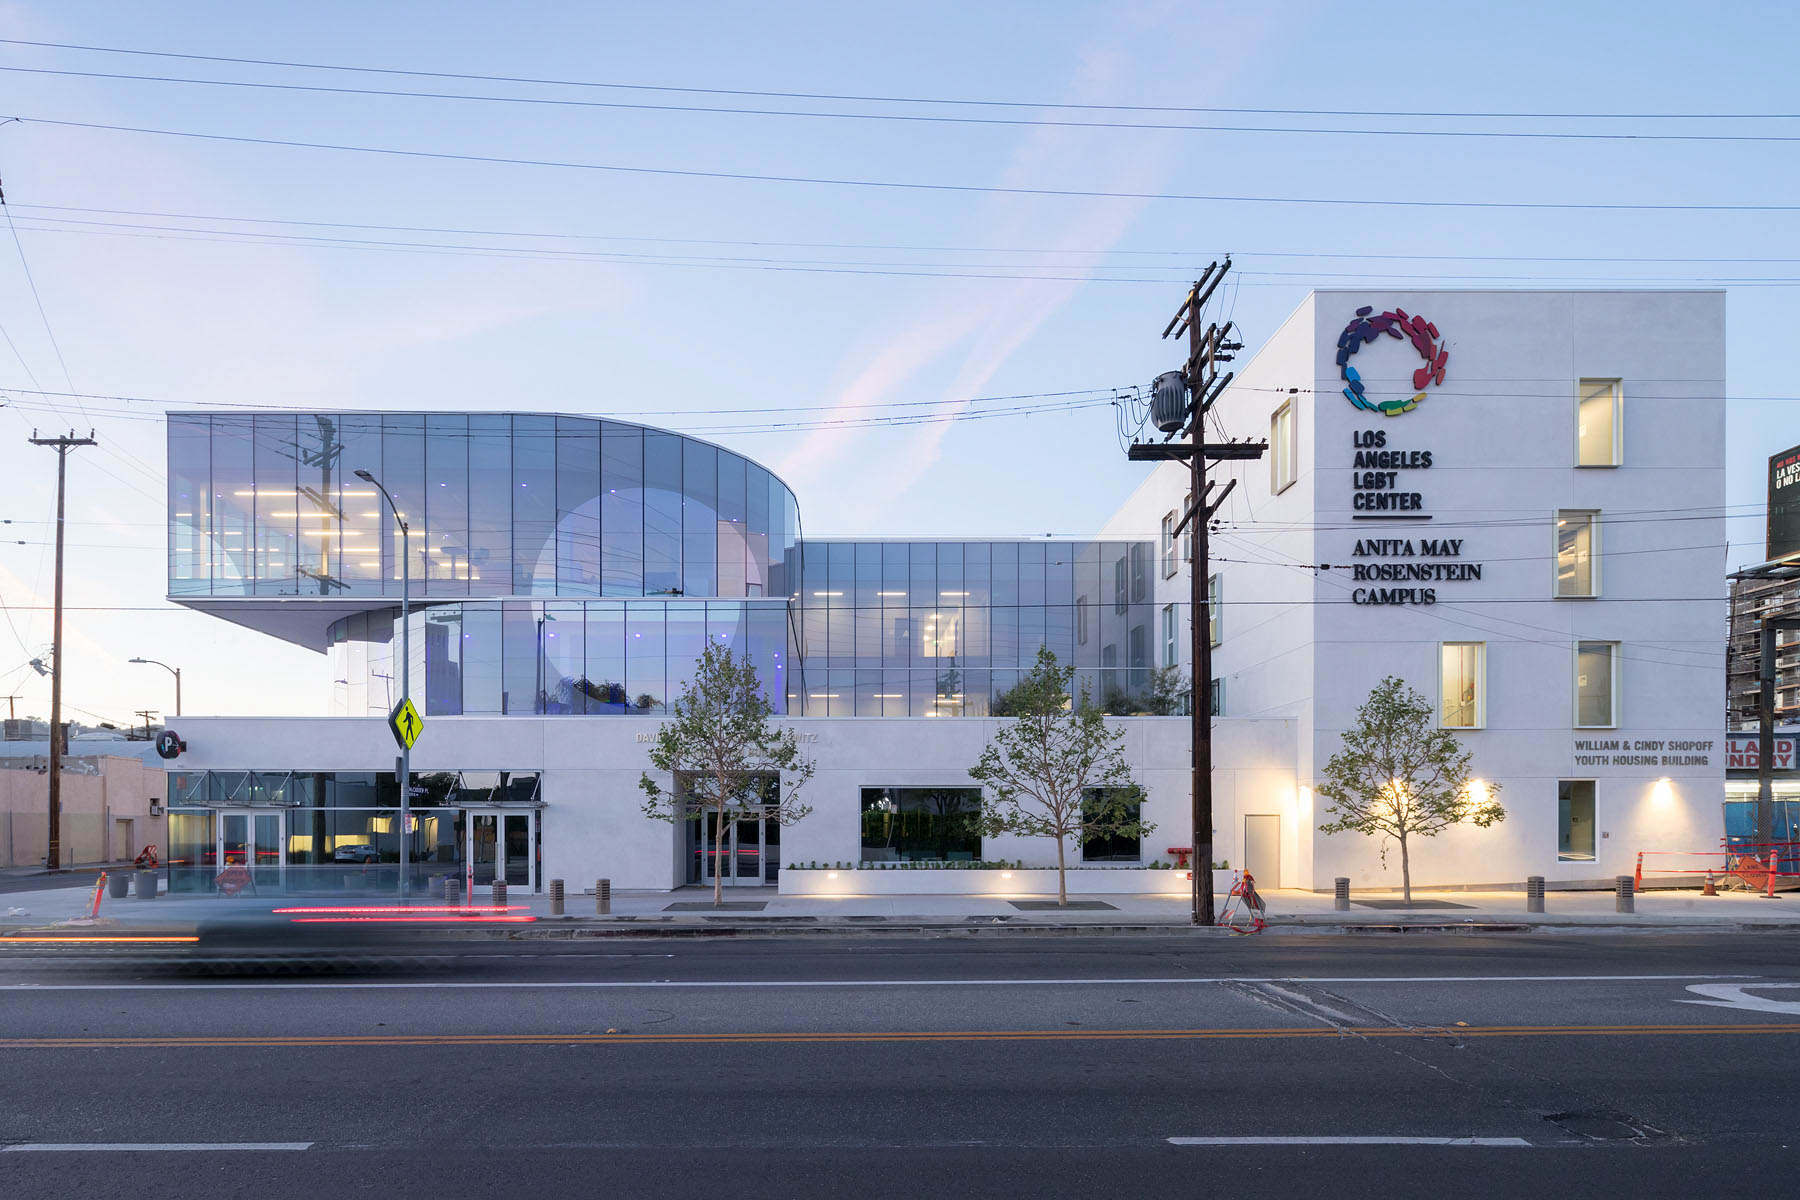 Photo of the Anita May Rosenstein Campus's street facade with glass and solid white forms